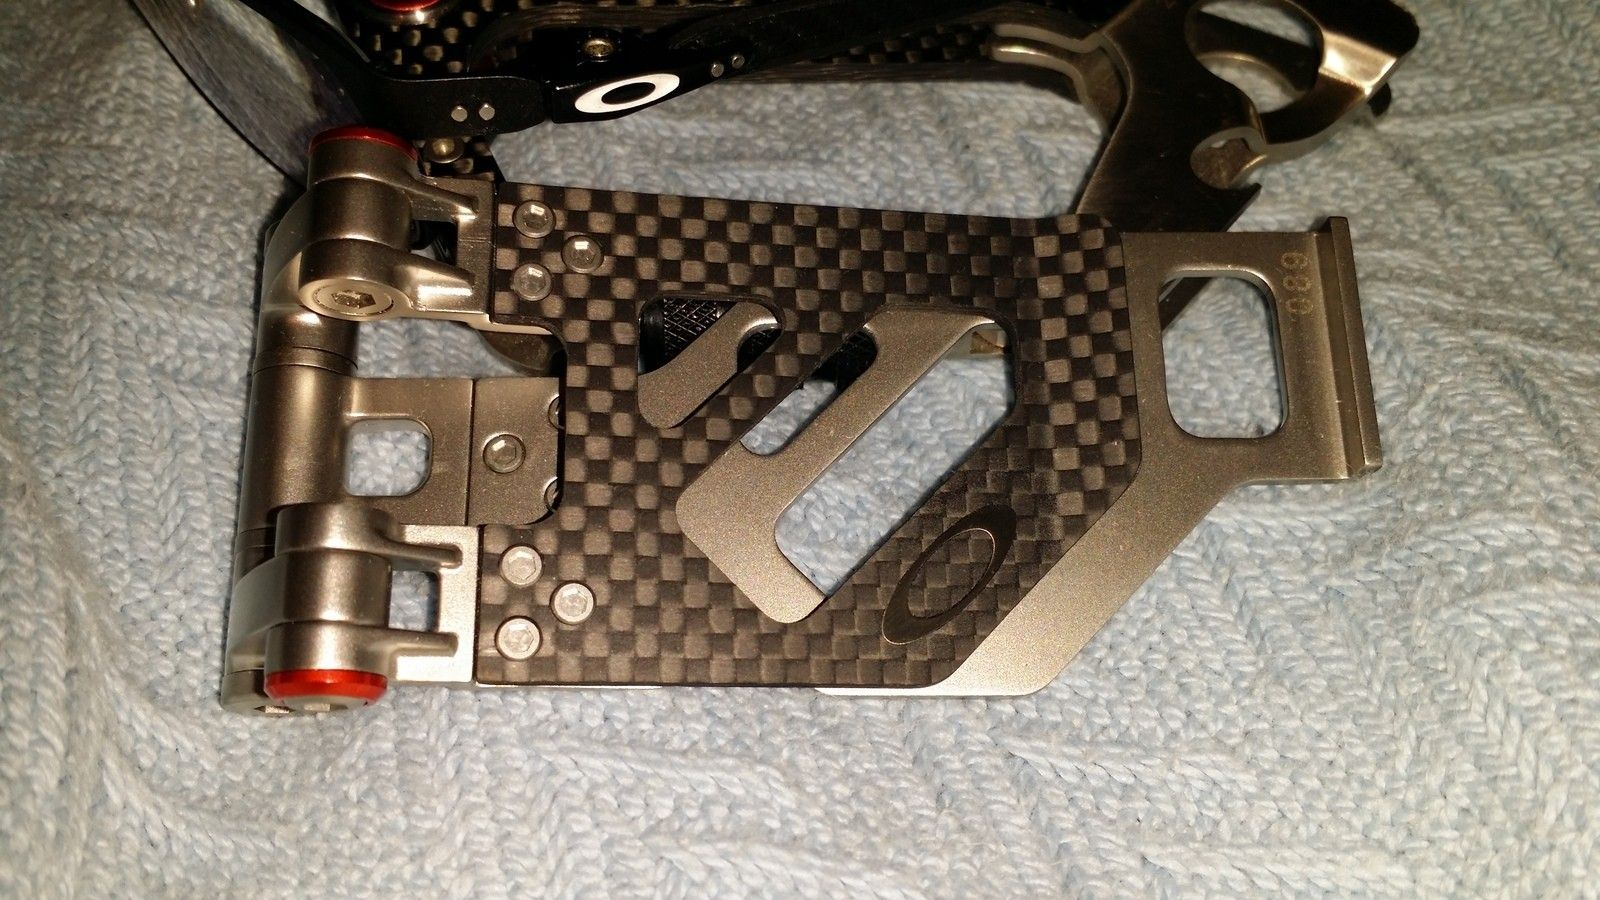 New carbon fiber clip - uploadfromtaptalk1432442919053.jpg